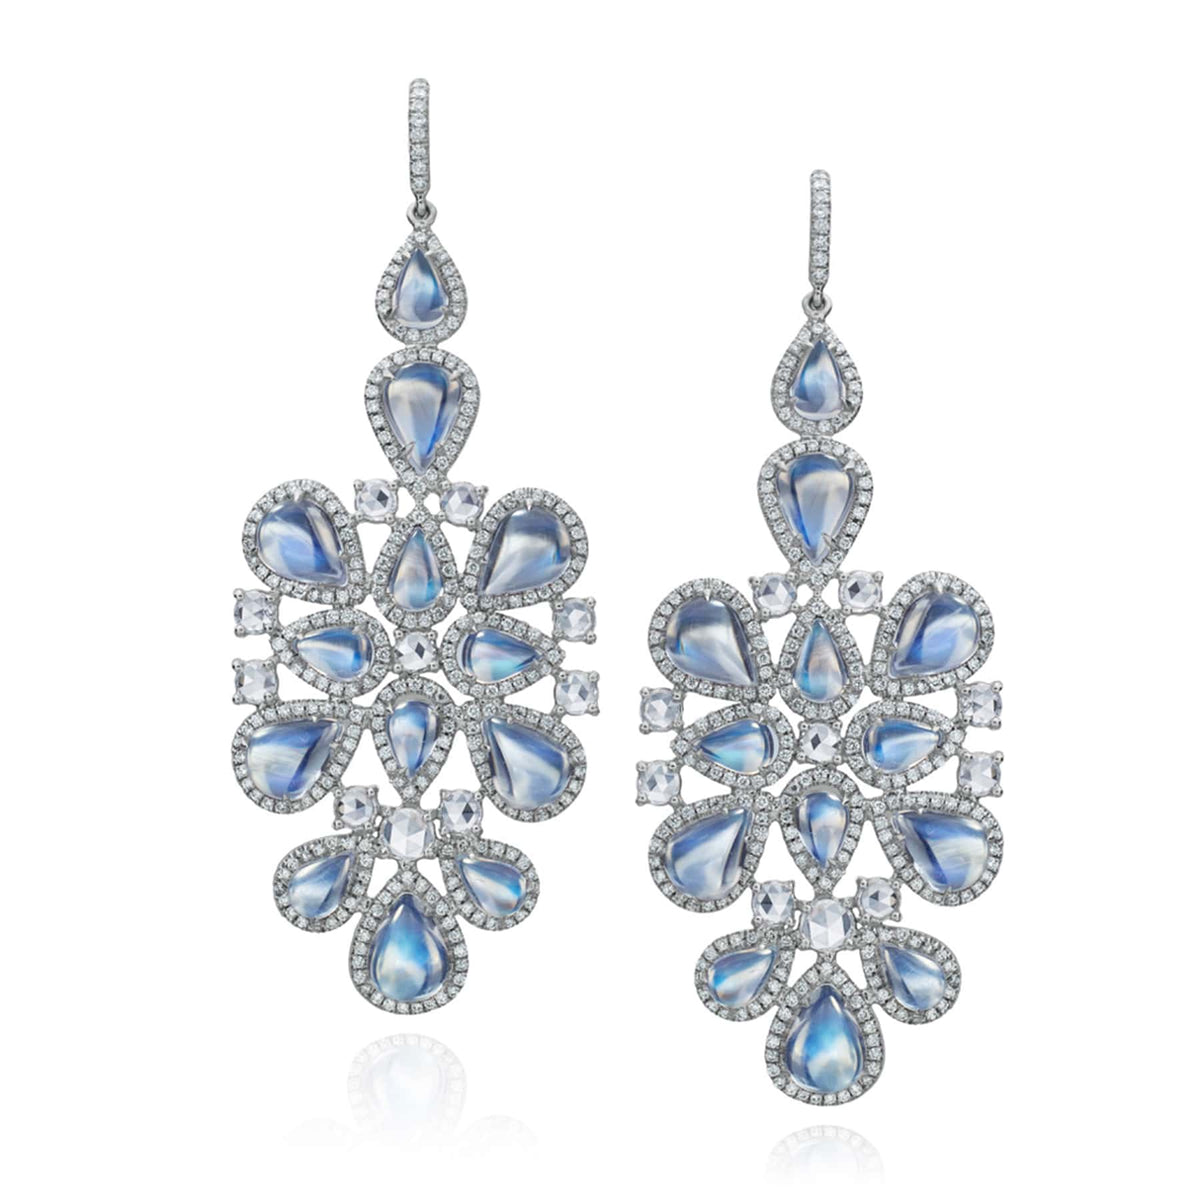 Clair de Lune Moonstone Chandelier Earrings - Nina Runsdorf